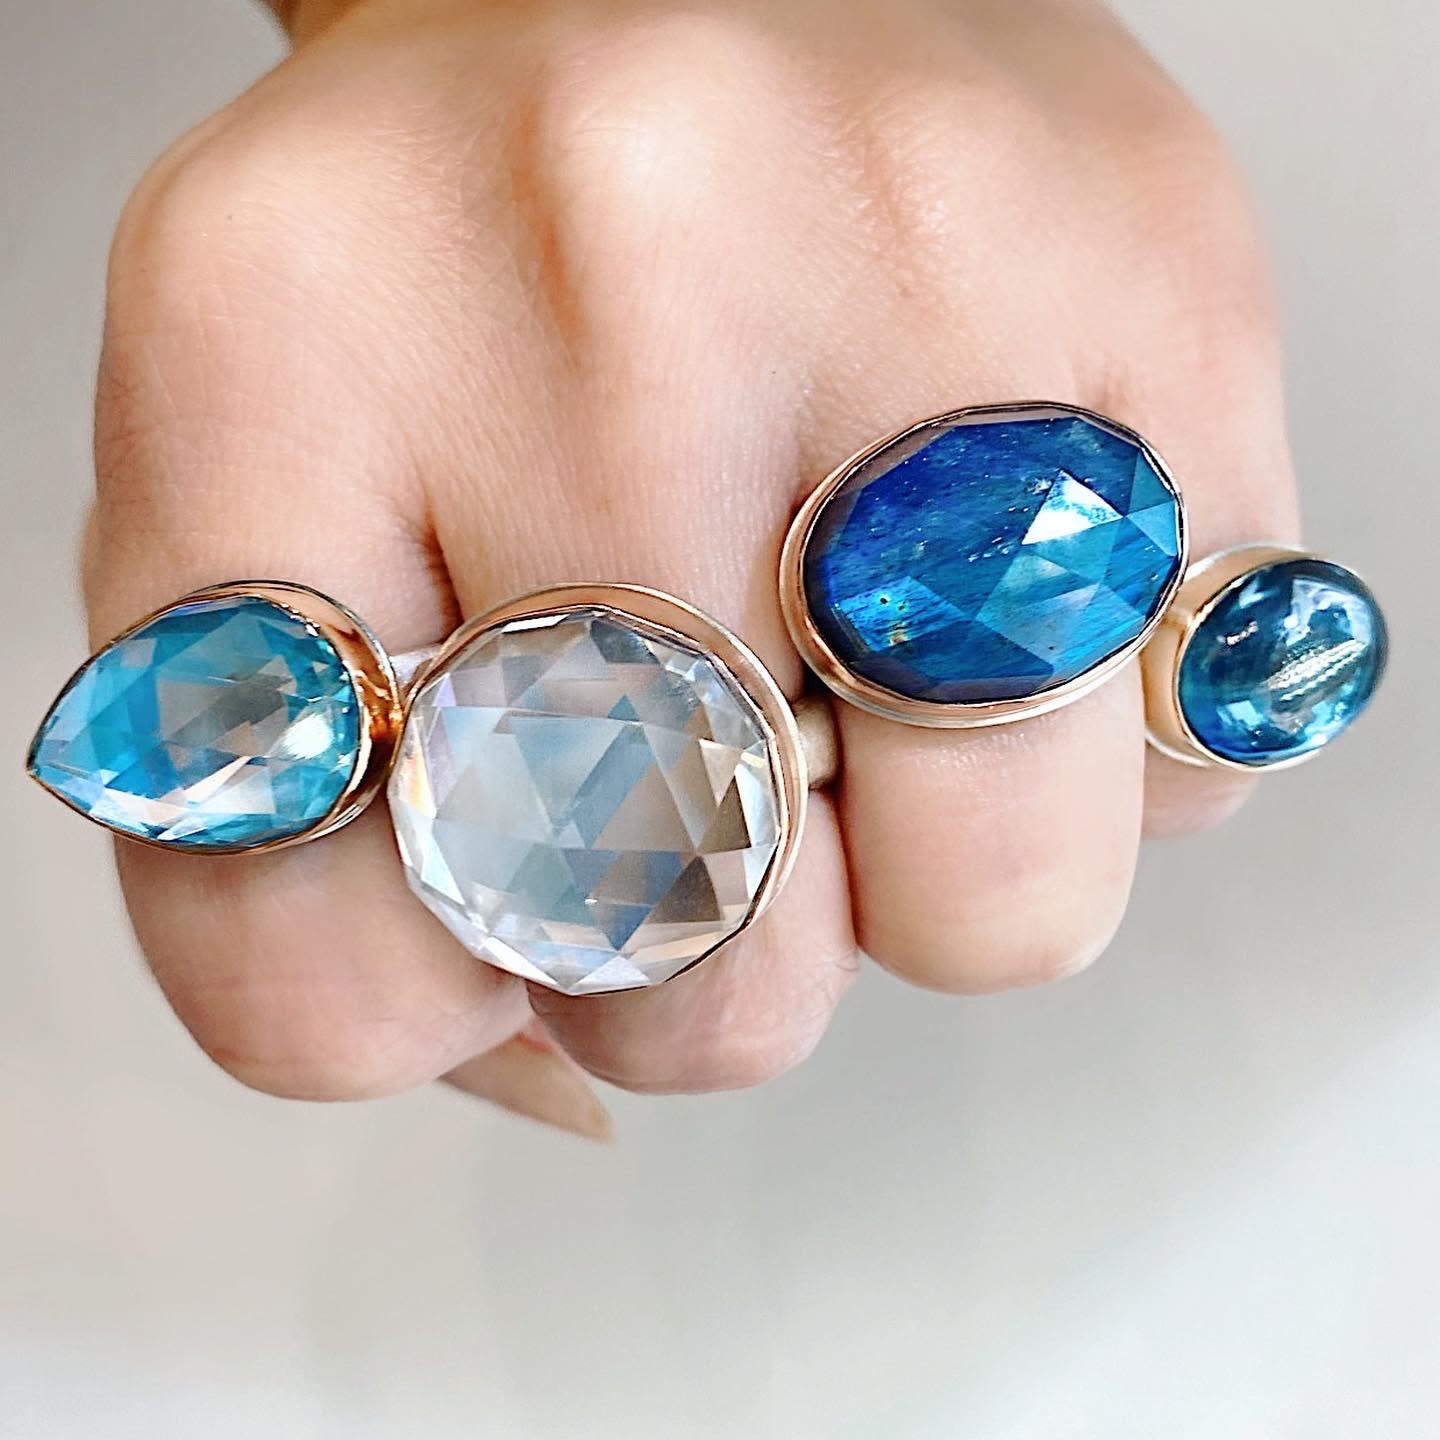 Jamie Joseph Jewelry Designs Round Faceted Rock Crystal Bezel Ring